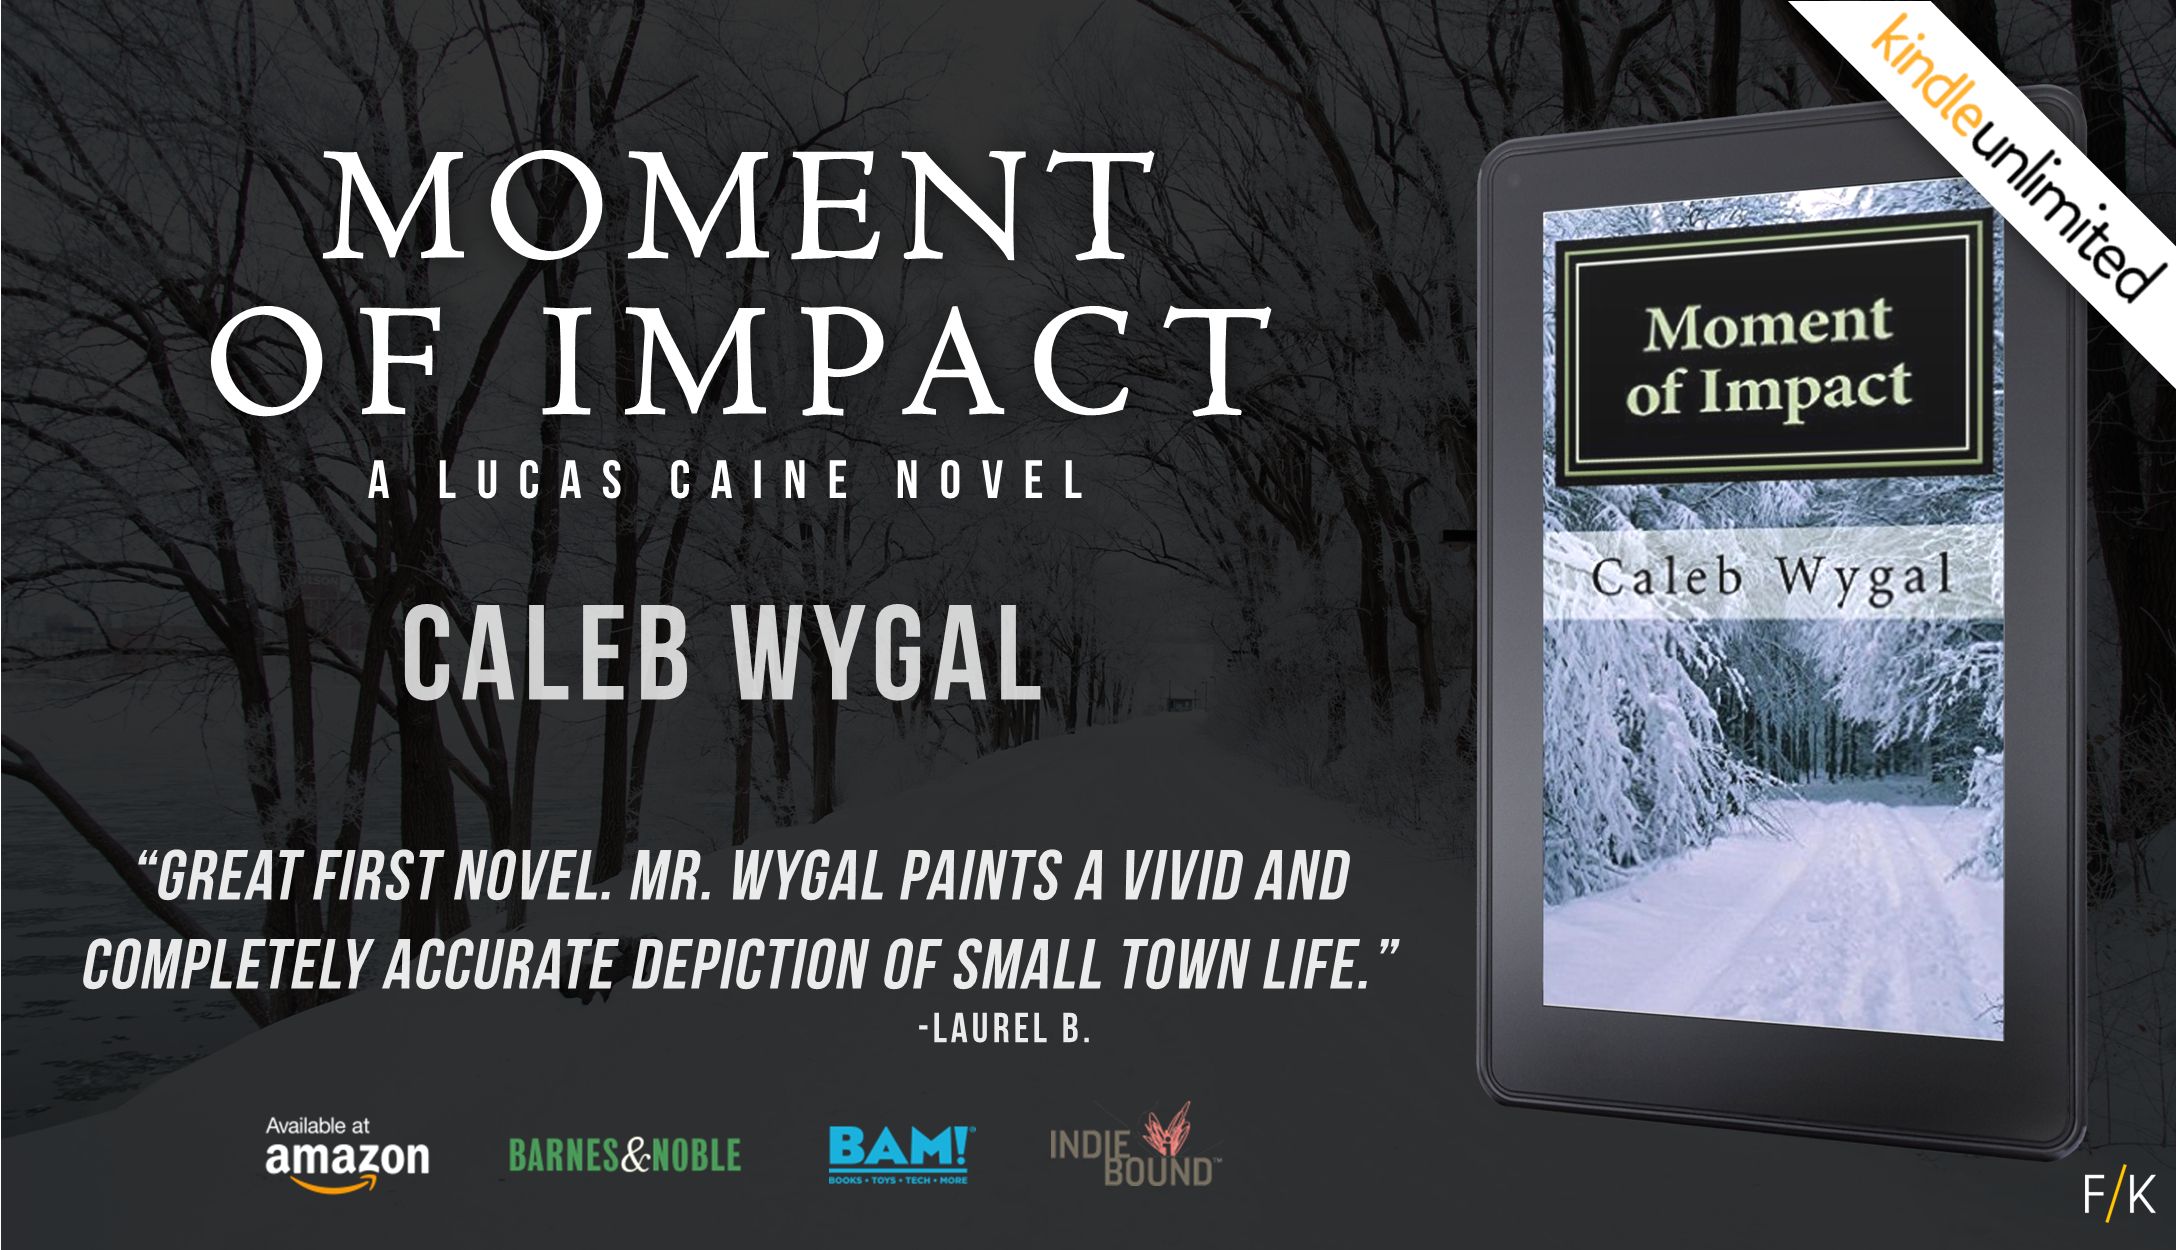 Moment of Impact by Caleb Wygal